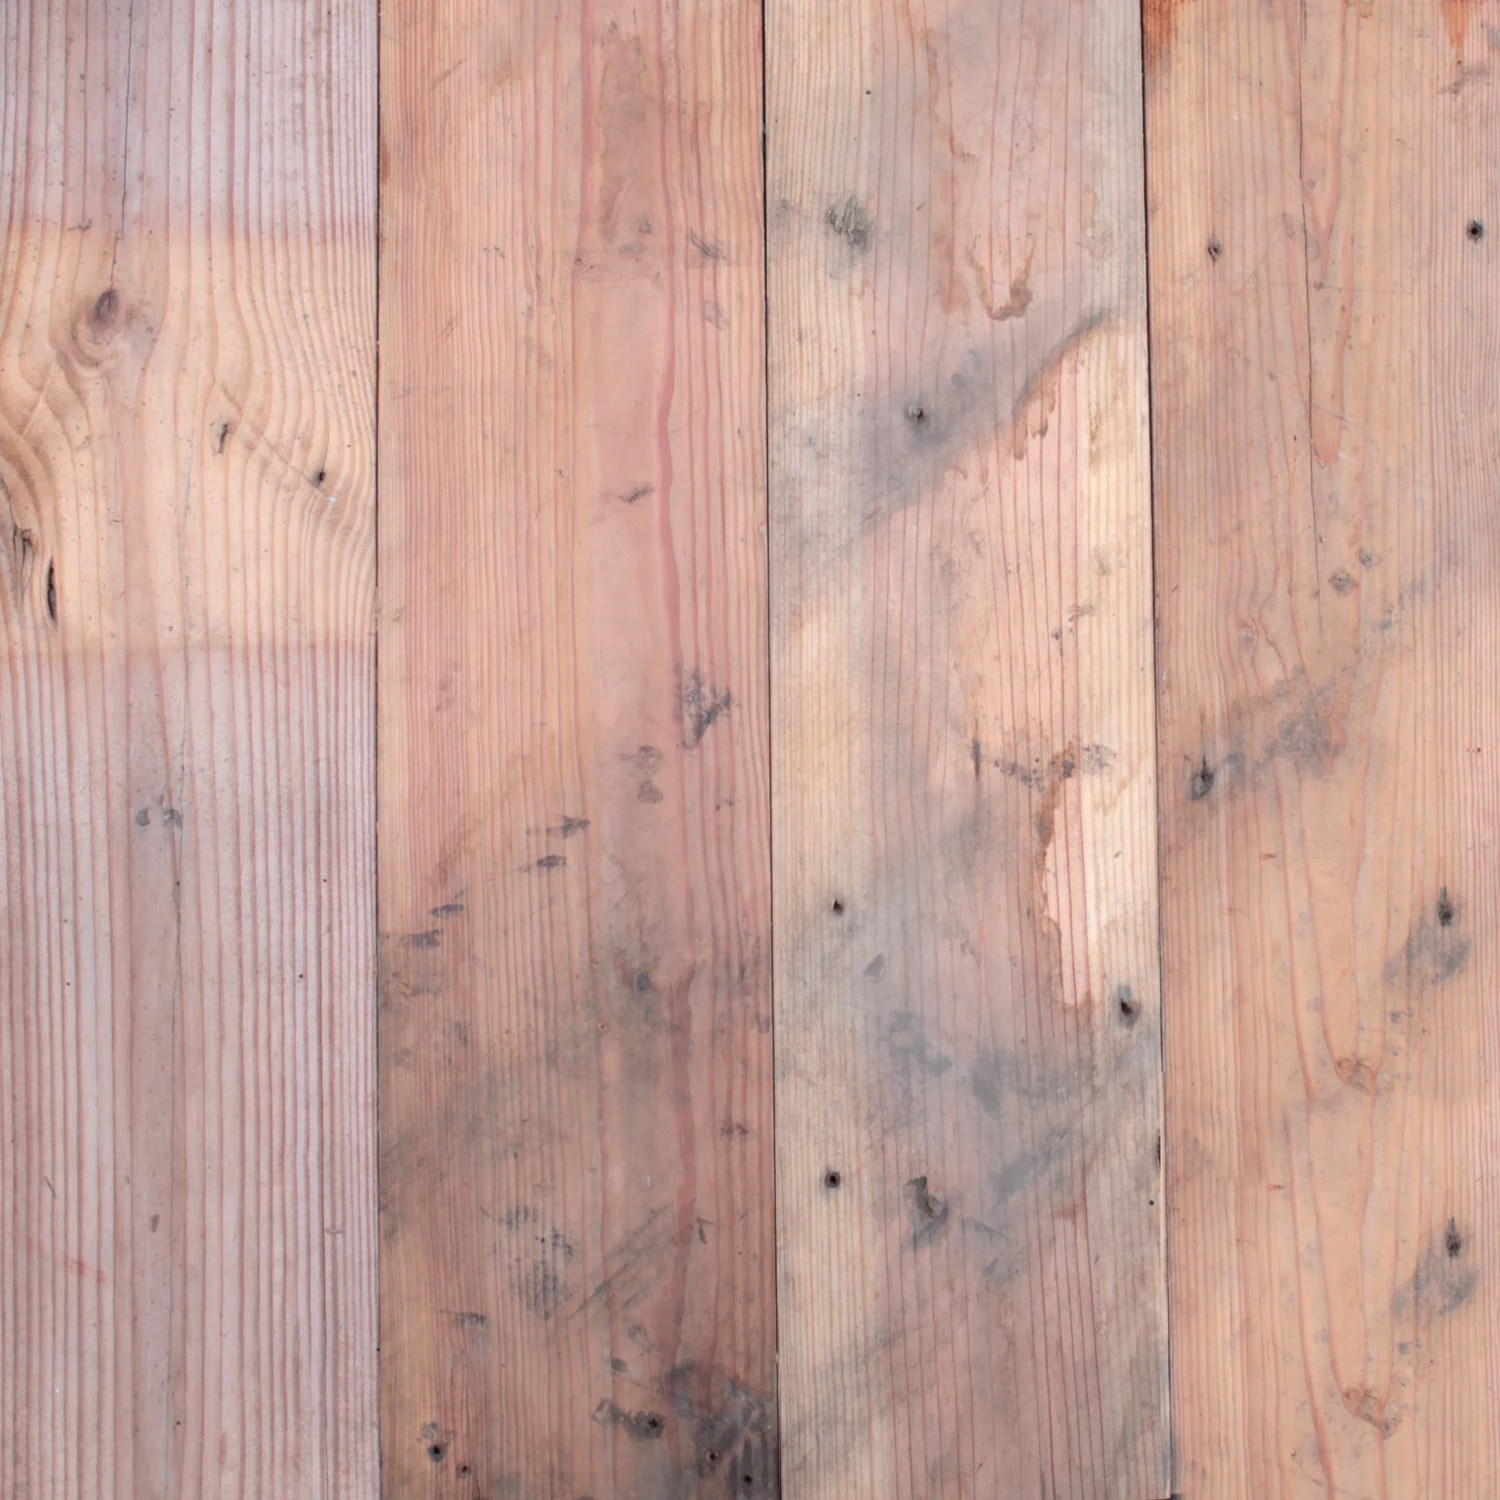 Pine Siding Reclaimed 1x8 Shiplap 21sqft Yellow Pine Paneling Warm Brown Color Authentic And Vintage Patina Siding Free Shipping